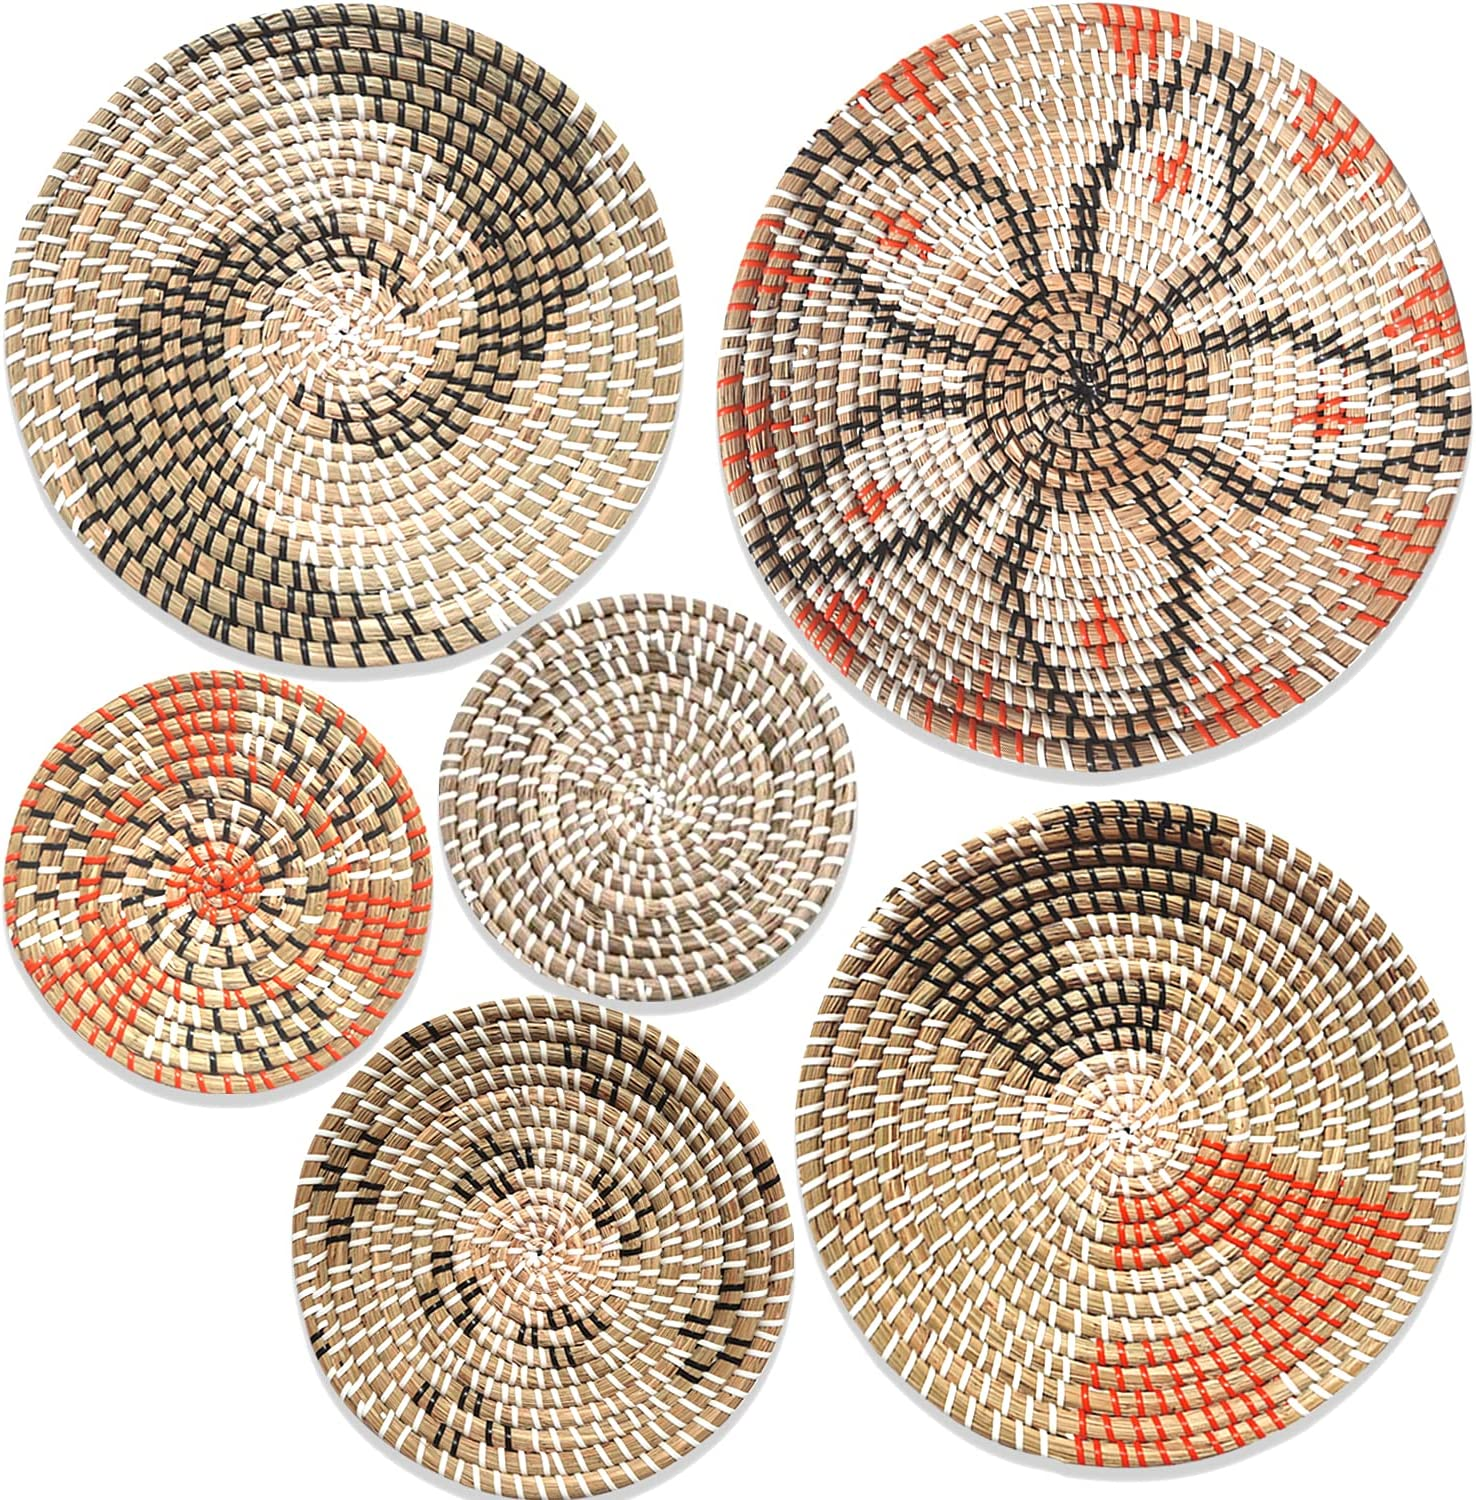 Hanging Woven New popularity Wall Basket Detroit Mall Decor Baskets of 6 Set Seagrass